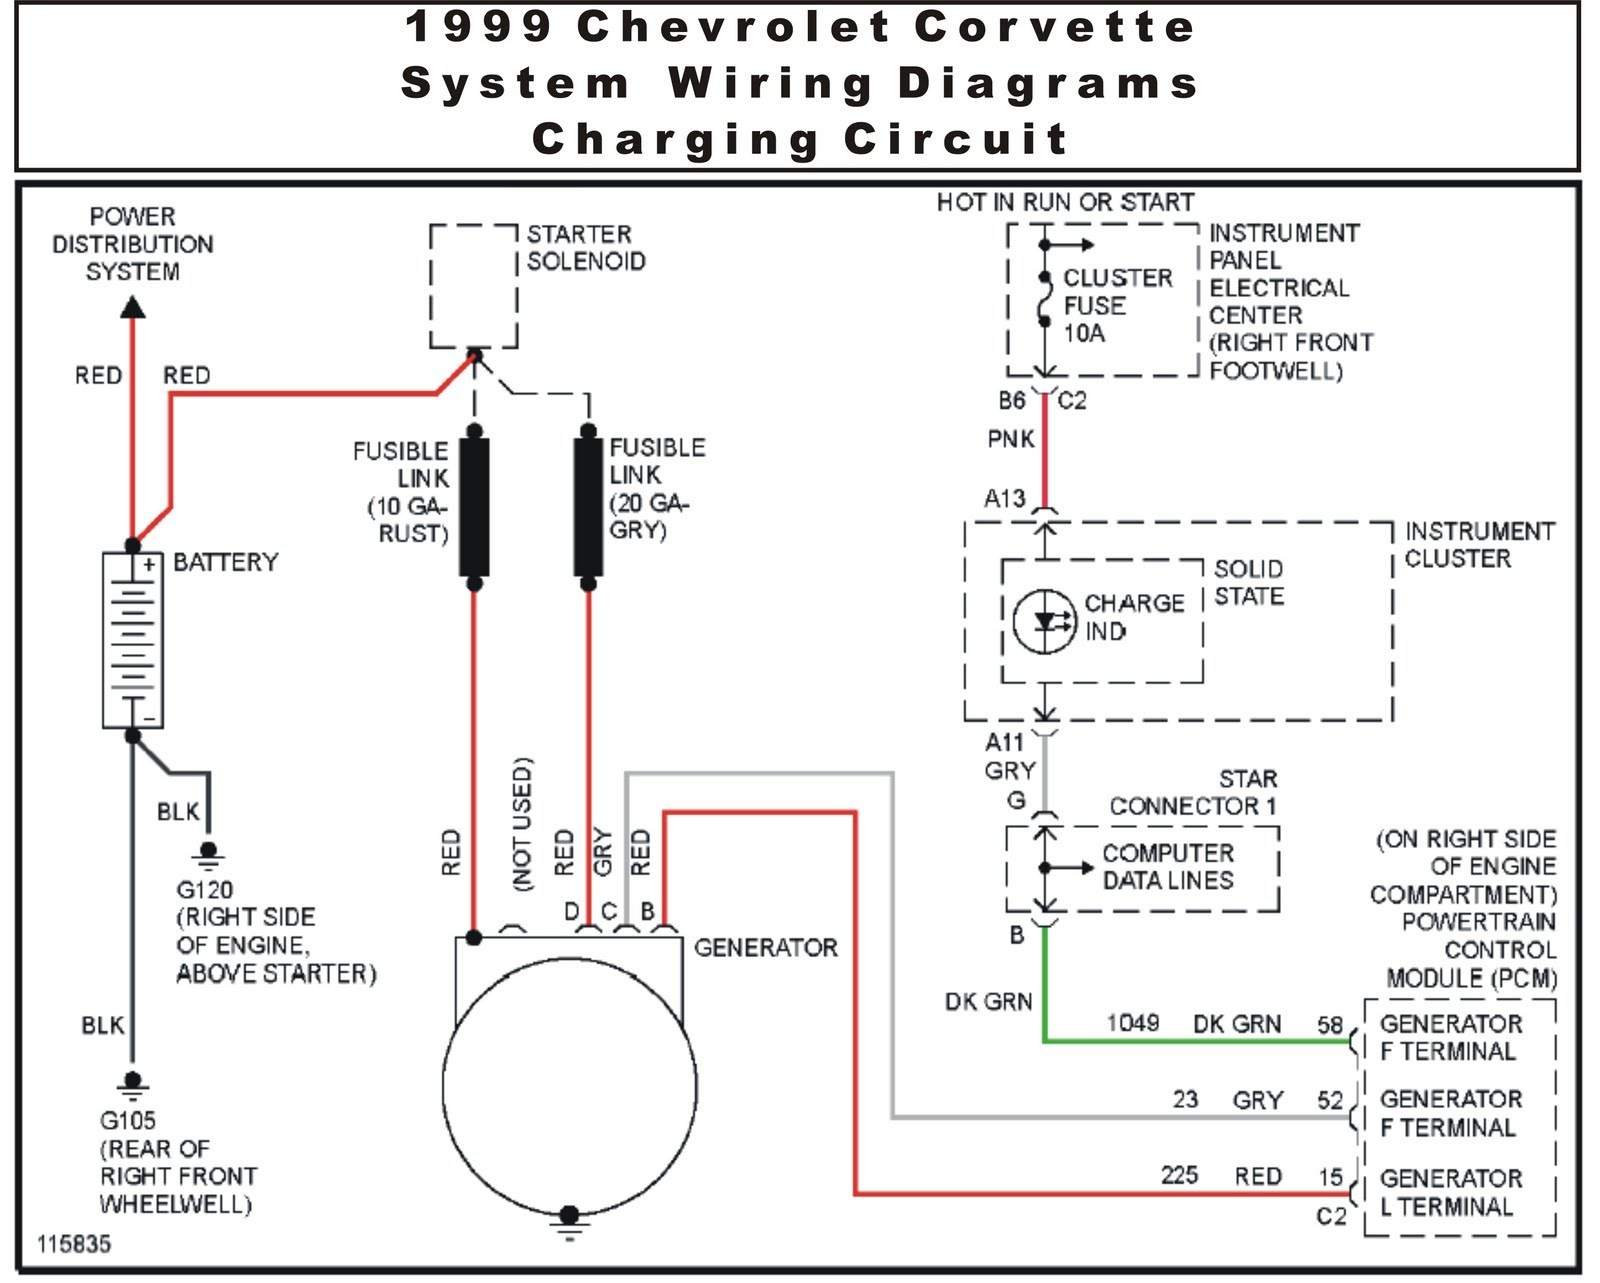 Photoelectric Sensor Wiring Diagram Electric Wiring Diagram Detailed Schematics Diagram Of Photoelectric Sensor Wiring Diagram